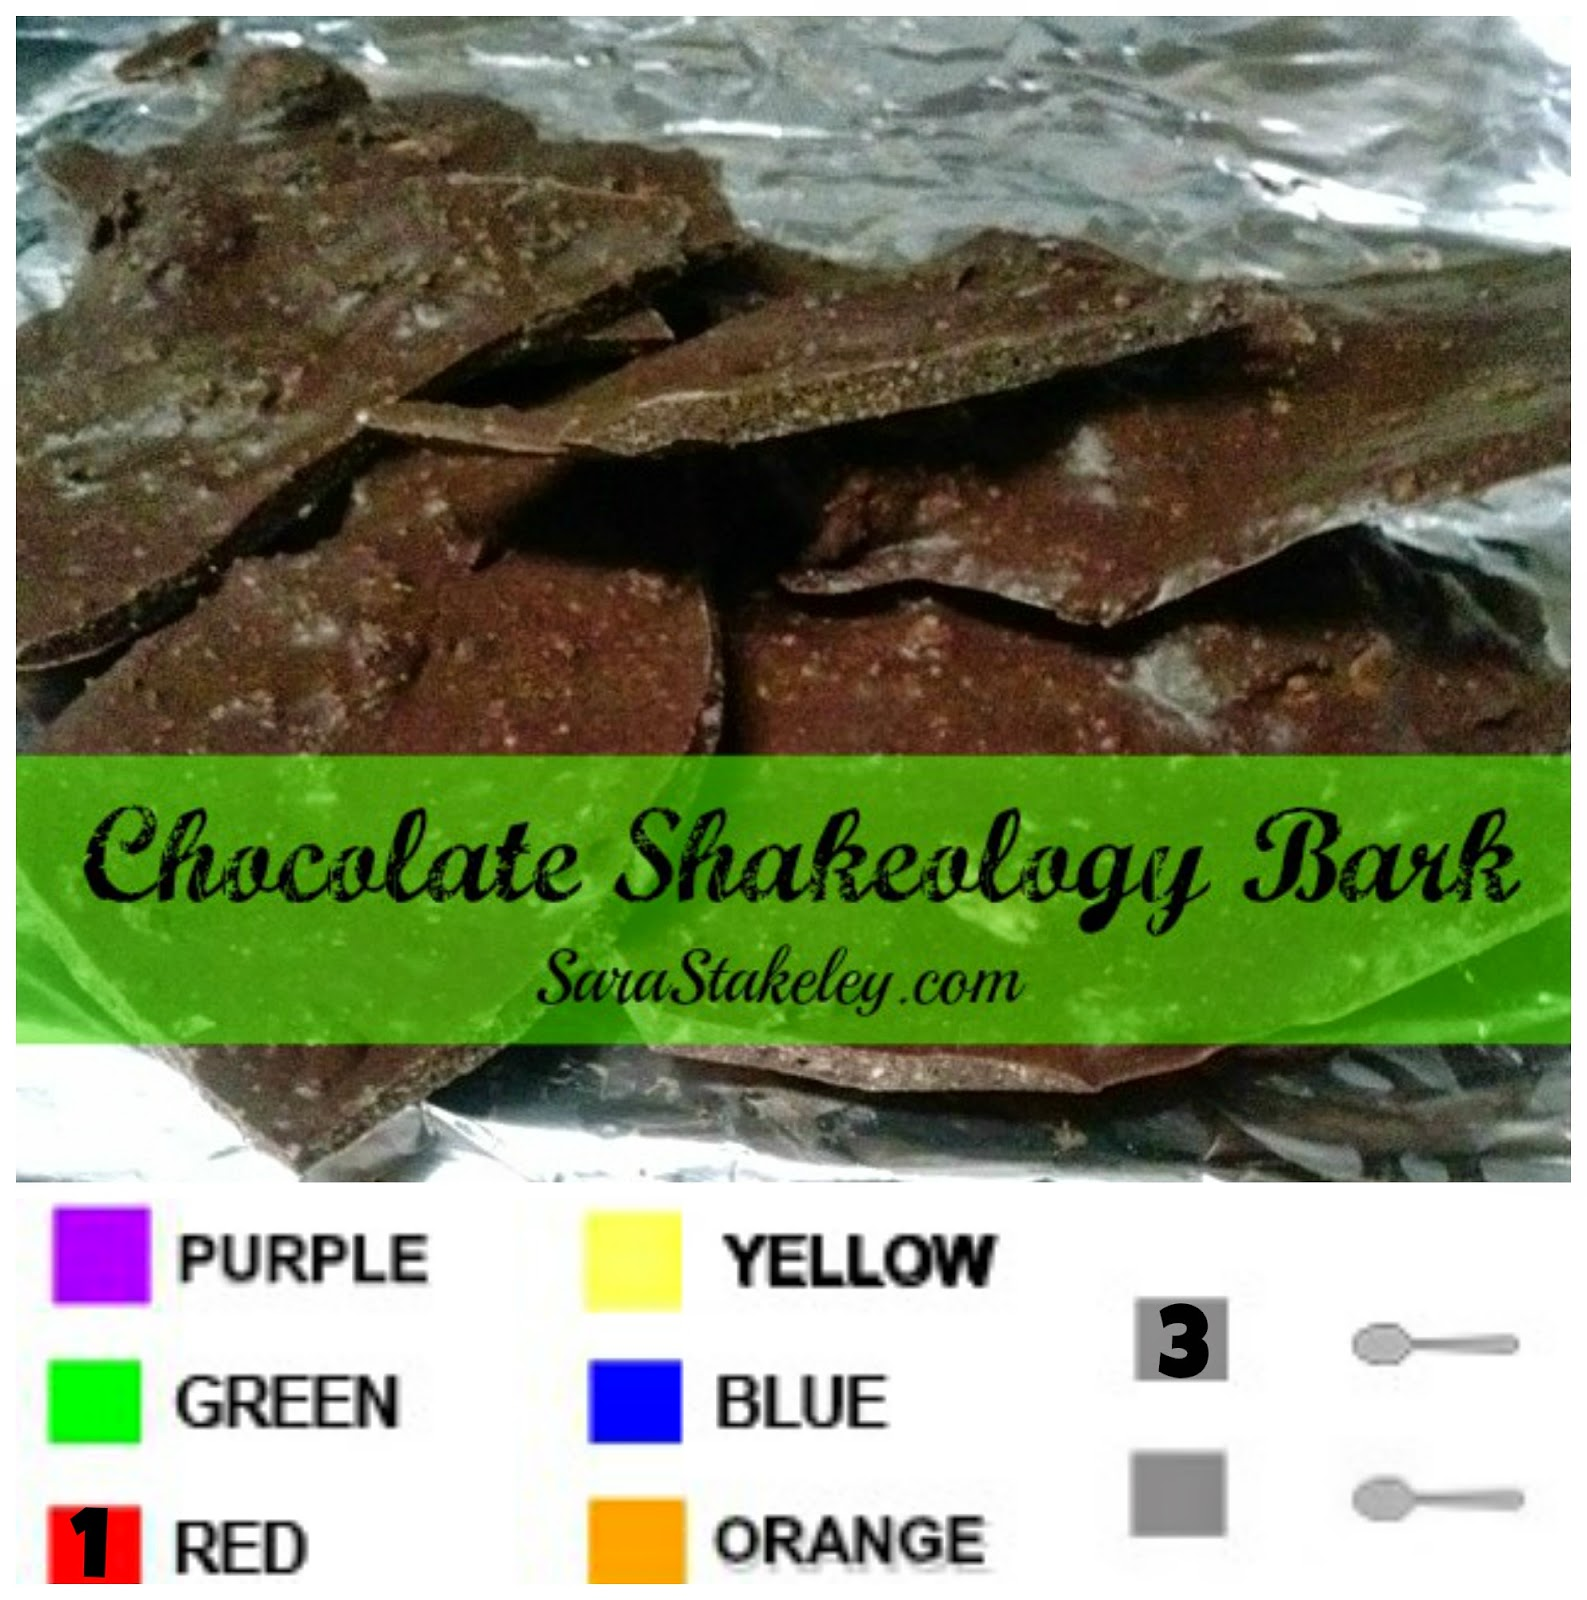 Sara Stakeley: Chocolate Shakeology Bark